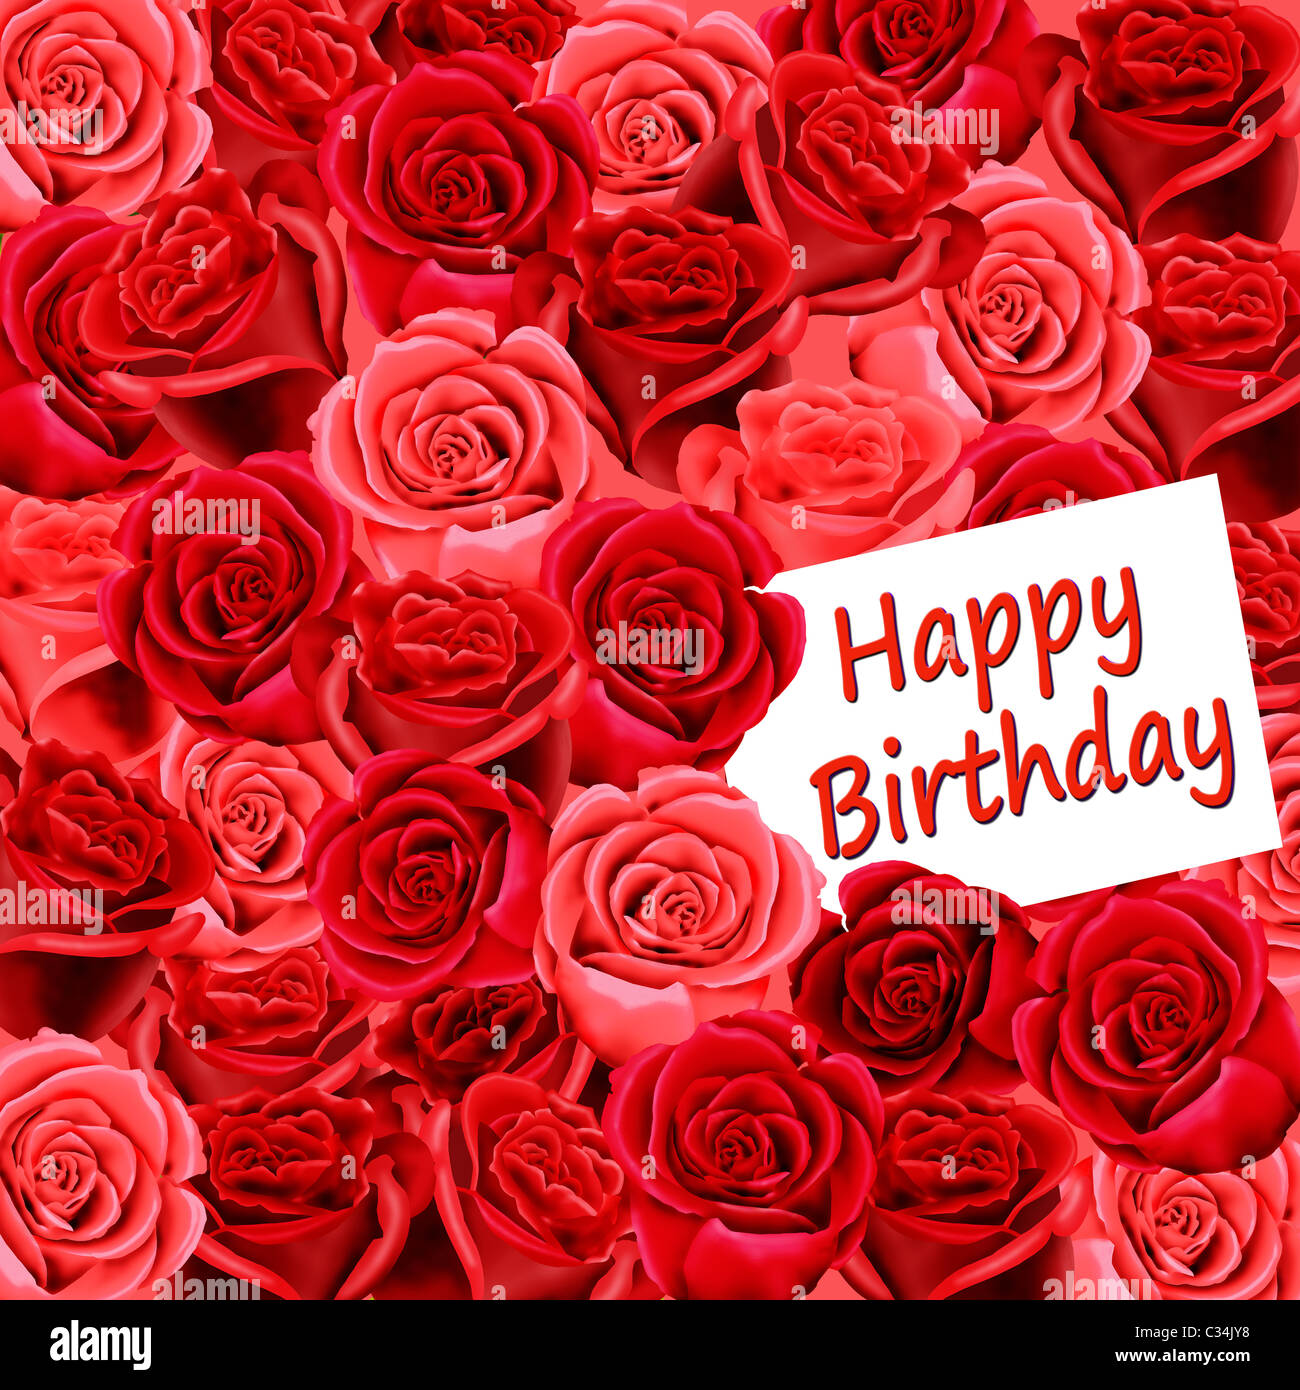 Birthday card with roses and happy birthday stock photo 36367388 birthday card with roses and happy birthday izmirmasajfo Image collections